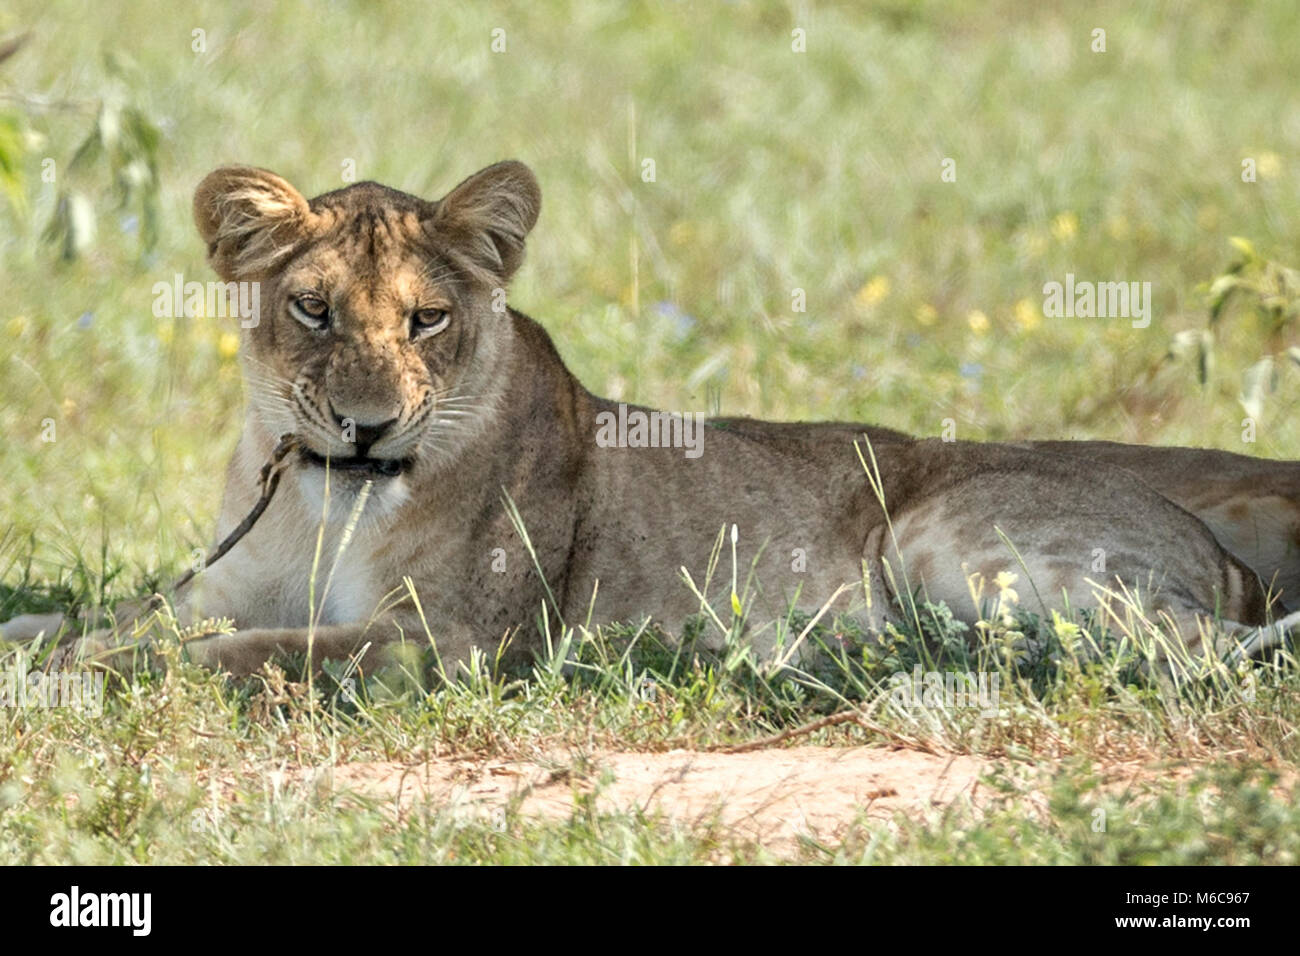 Lioness 'Murchison's Falls National Park', Uganda, Africa. Chewing on a twig - Stock Image